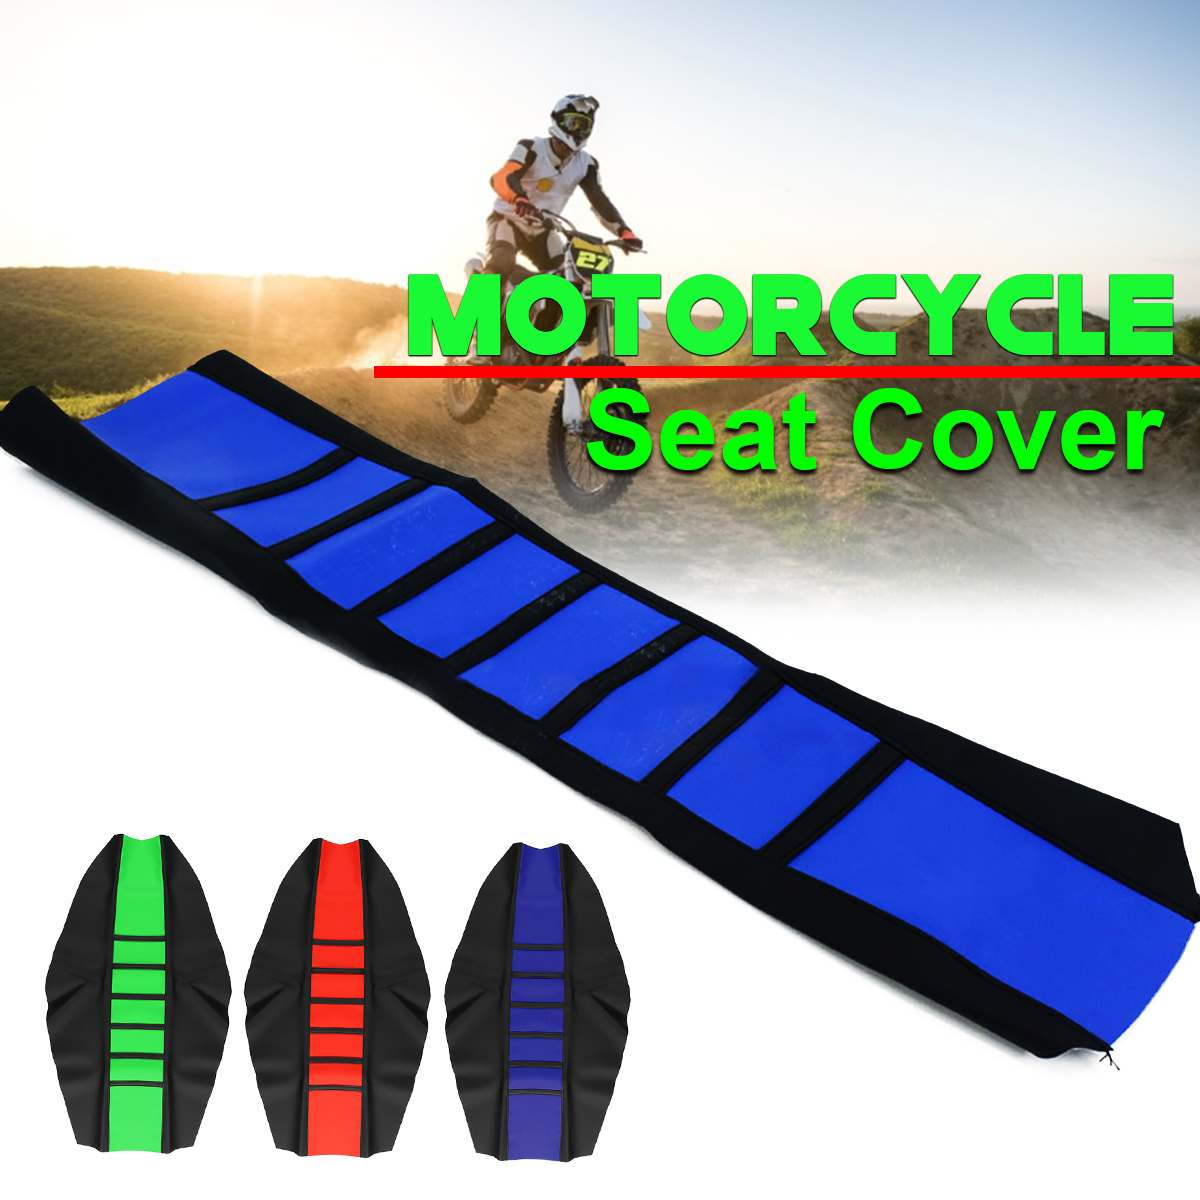 AUDEW Motorcycles Seat Cover Dirt Bike Off-road Gripper Soft Leather Striped Design Leather + Vinyl Material Wear Resistant